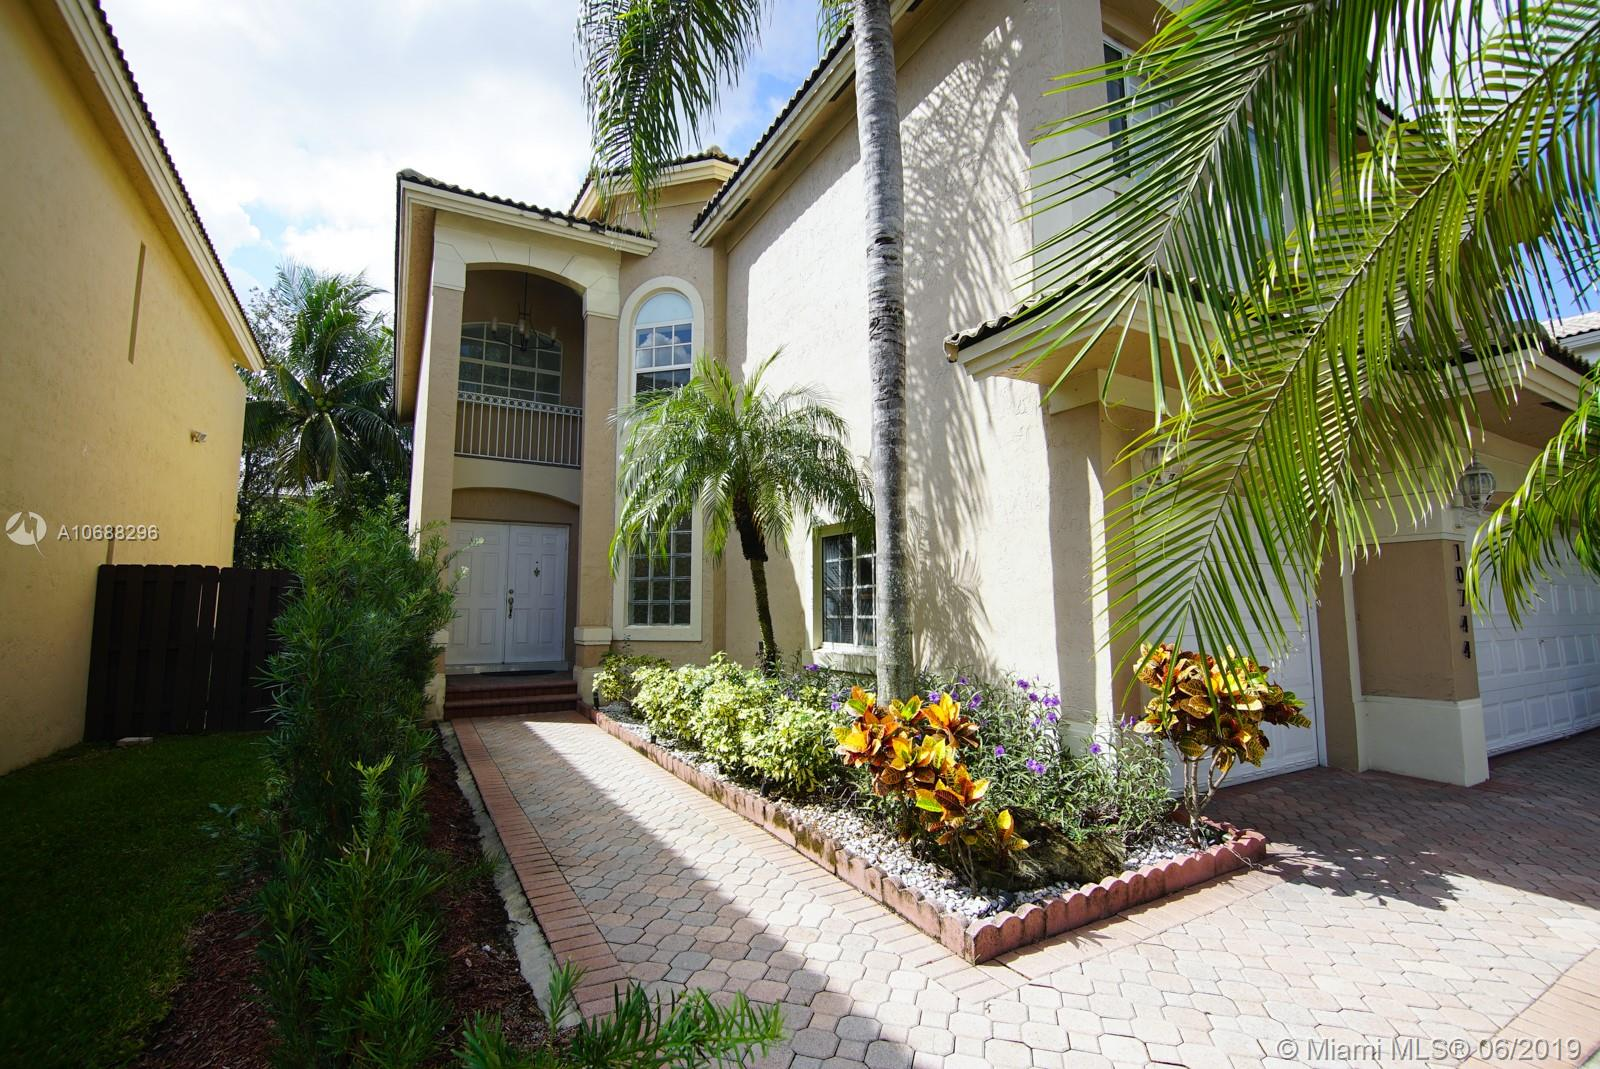 REDUCED FOR QUICK SALE!  SELLER SAYS BRING OFFERS! SELLER MOTIVATED! Now is the time to purchase & live in a resort type community in the middle of the best area of Doral. Spacious incredible home in St Croix completely remodeled ready to be occupied. this house was barely used as a second home. Very well maintained & updated. White porcelain floors all over, Modern sleek glass handrail takes you to ample second floor with 4 comfortable bedrooms. Generous great kitchen with top of the line appliances.family room with pool view&built-in entertainment center.One bedroom & bath downstairs, perfect for guests or in-laws. Large garage. Enjoy the great amenities of Dorl Community Club. Classes for adults & children plus many events sponsored by the community. Great schools